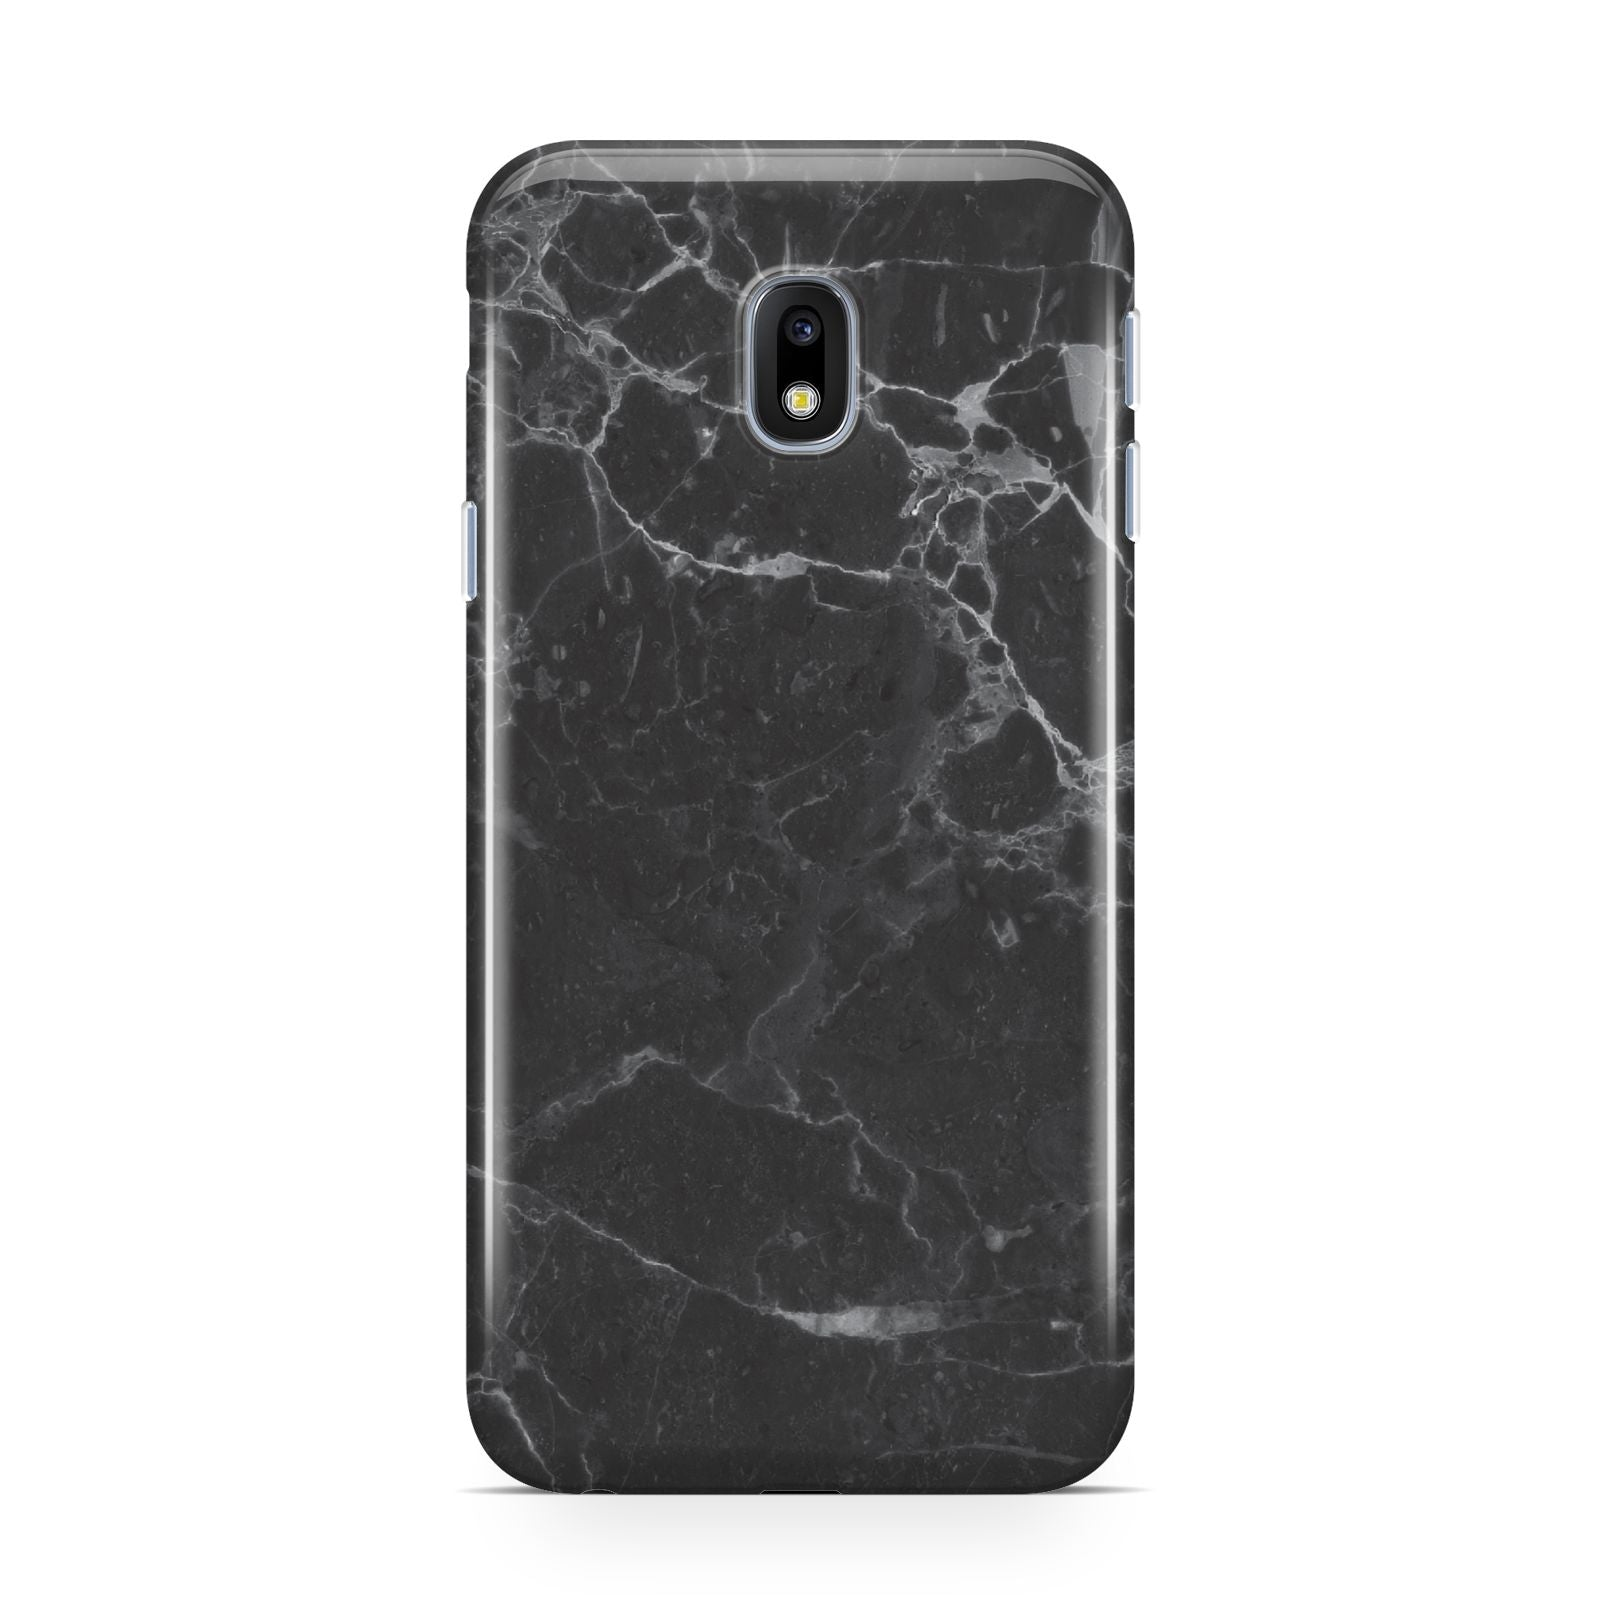 Faux Marble Effect Black Samsung Galaxy J3 2017 Case